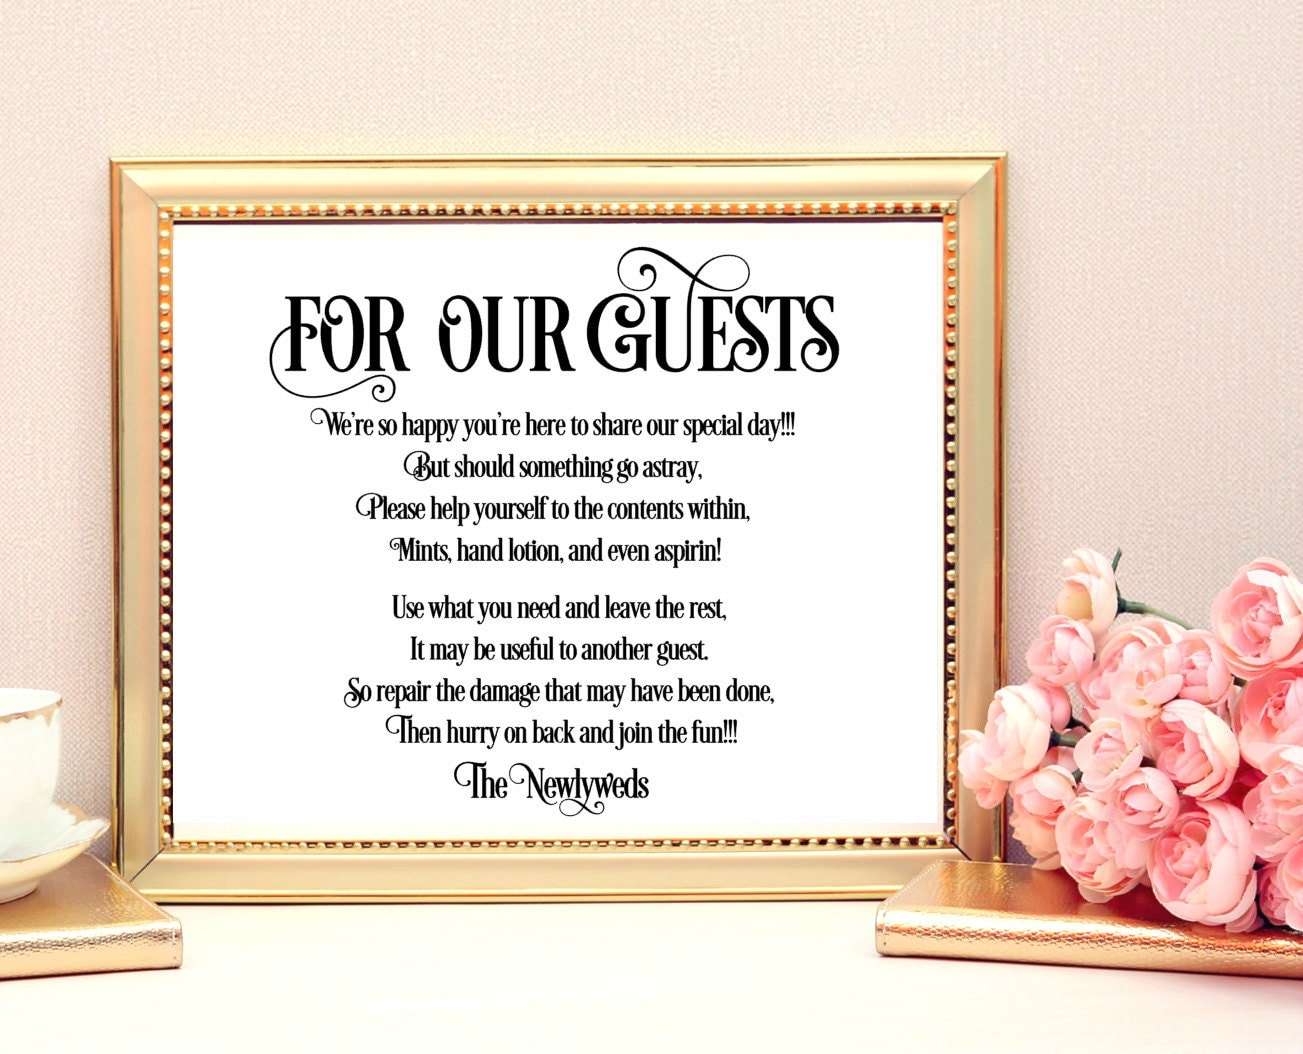 Funny bathroom signs for cleanliness - Bathroom Signages Bathroom Wedding Signs Funny And Cute Restroom Wedding Sign Wedding Decorations Bathroom Decorations